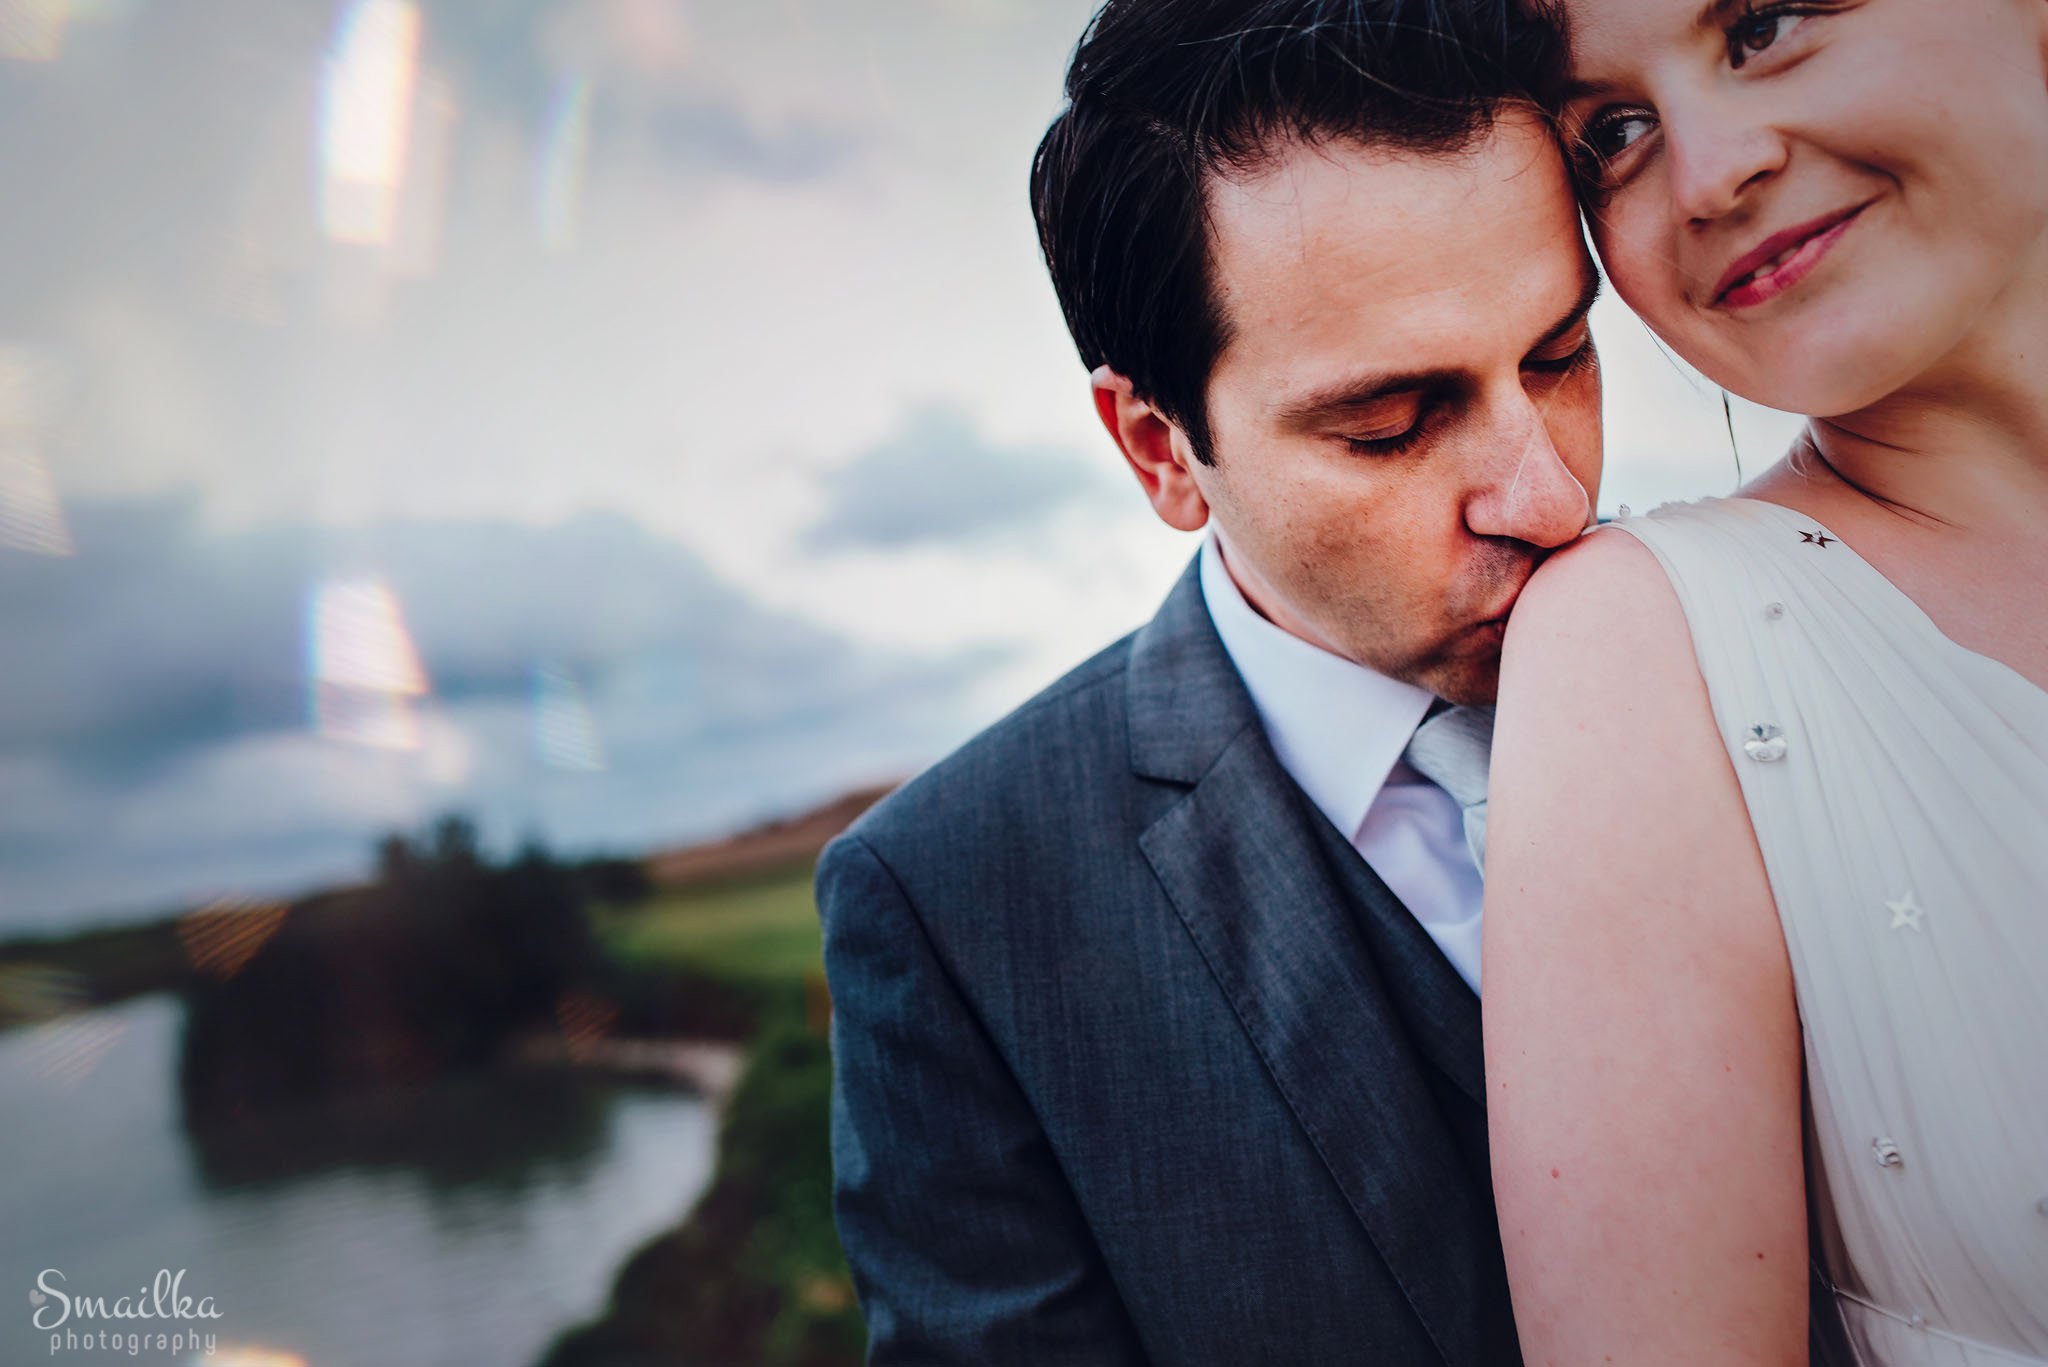 Groom kissing the bride on wedding photo session